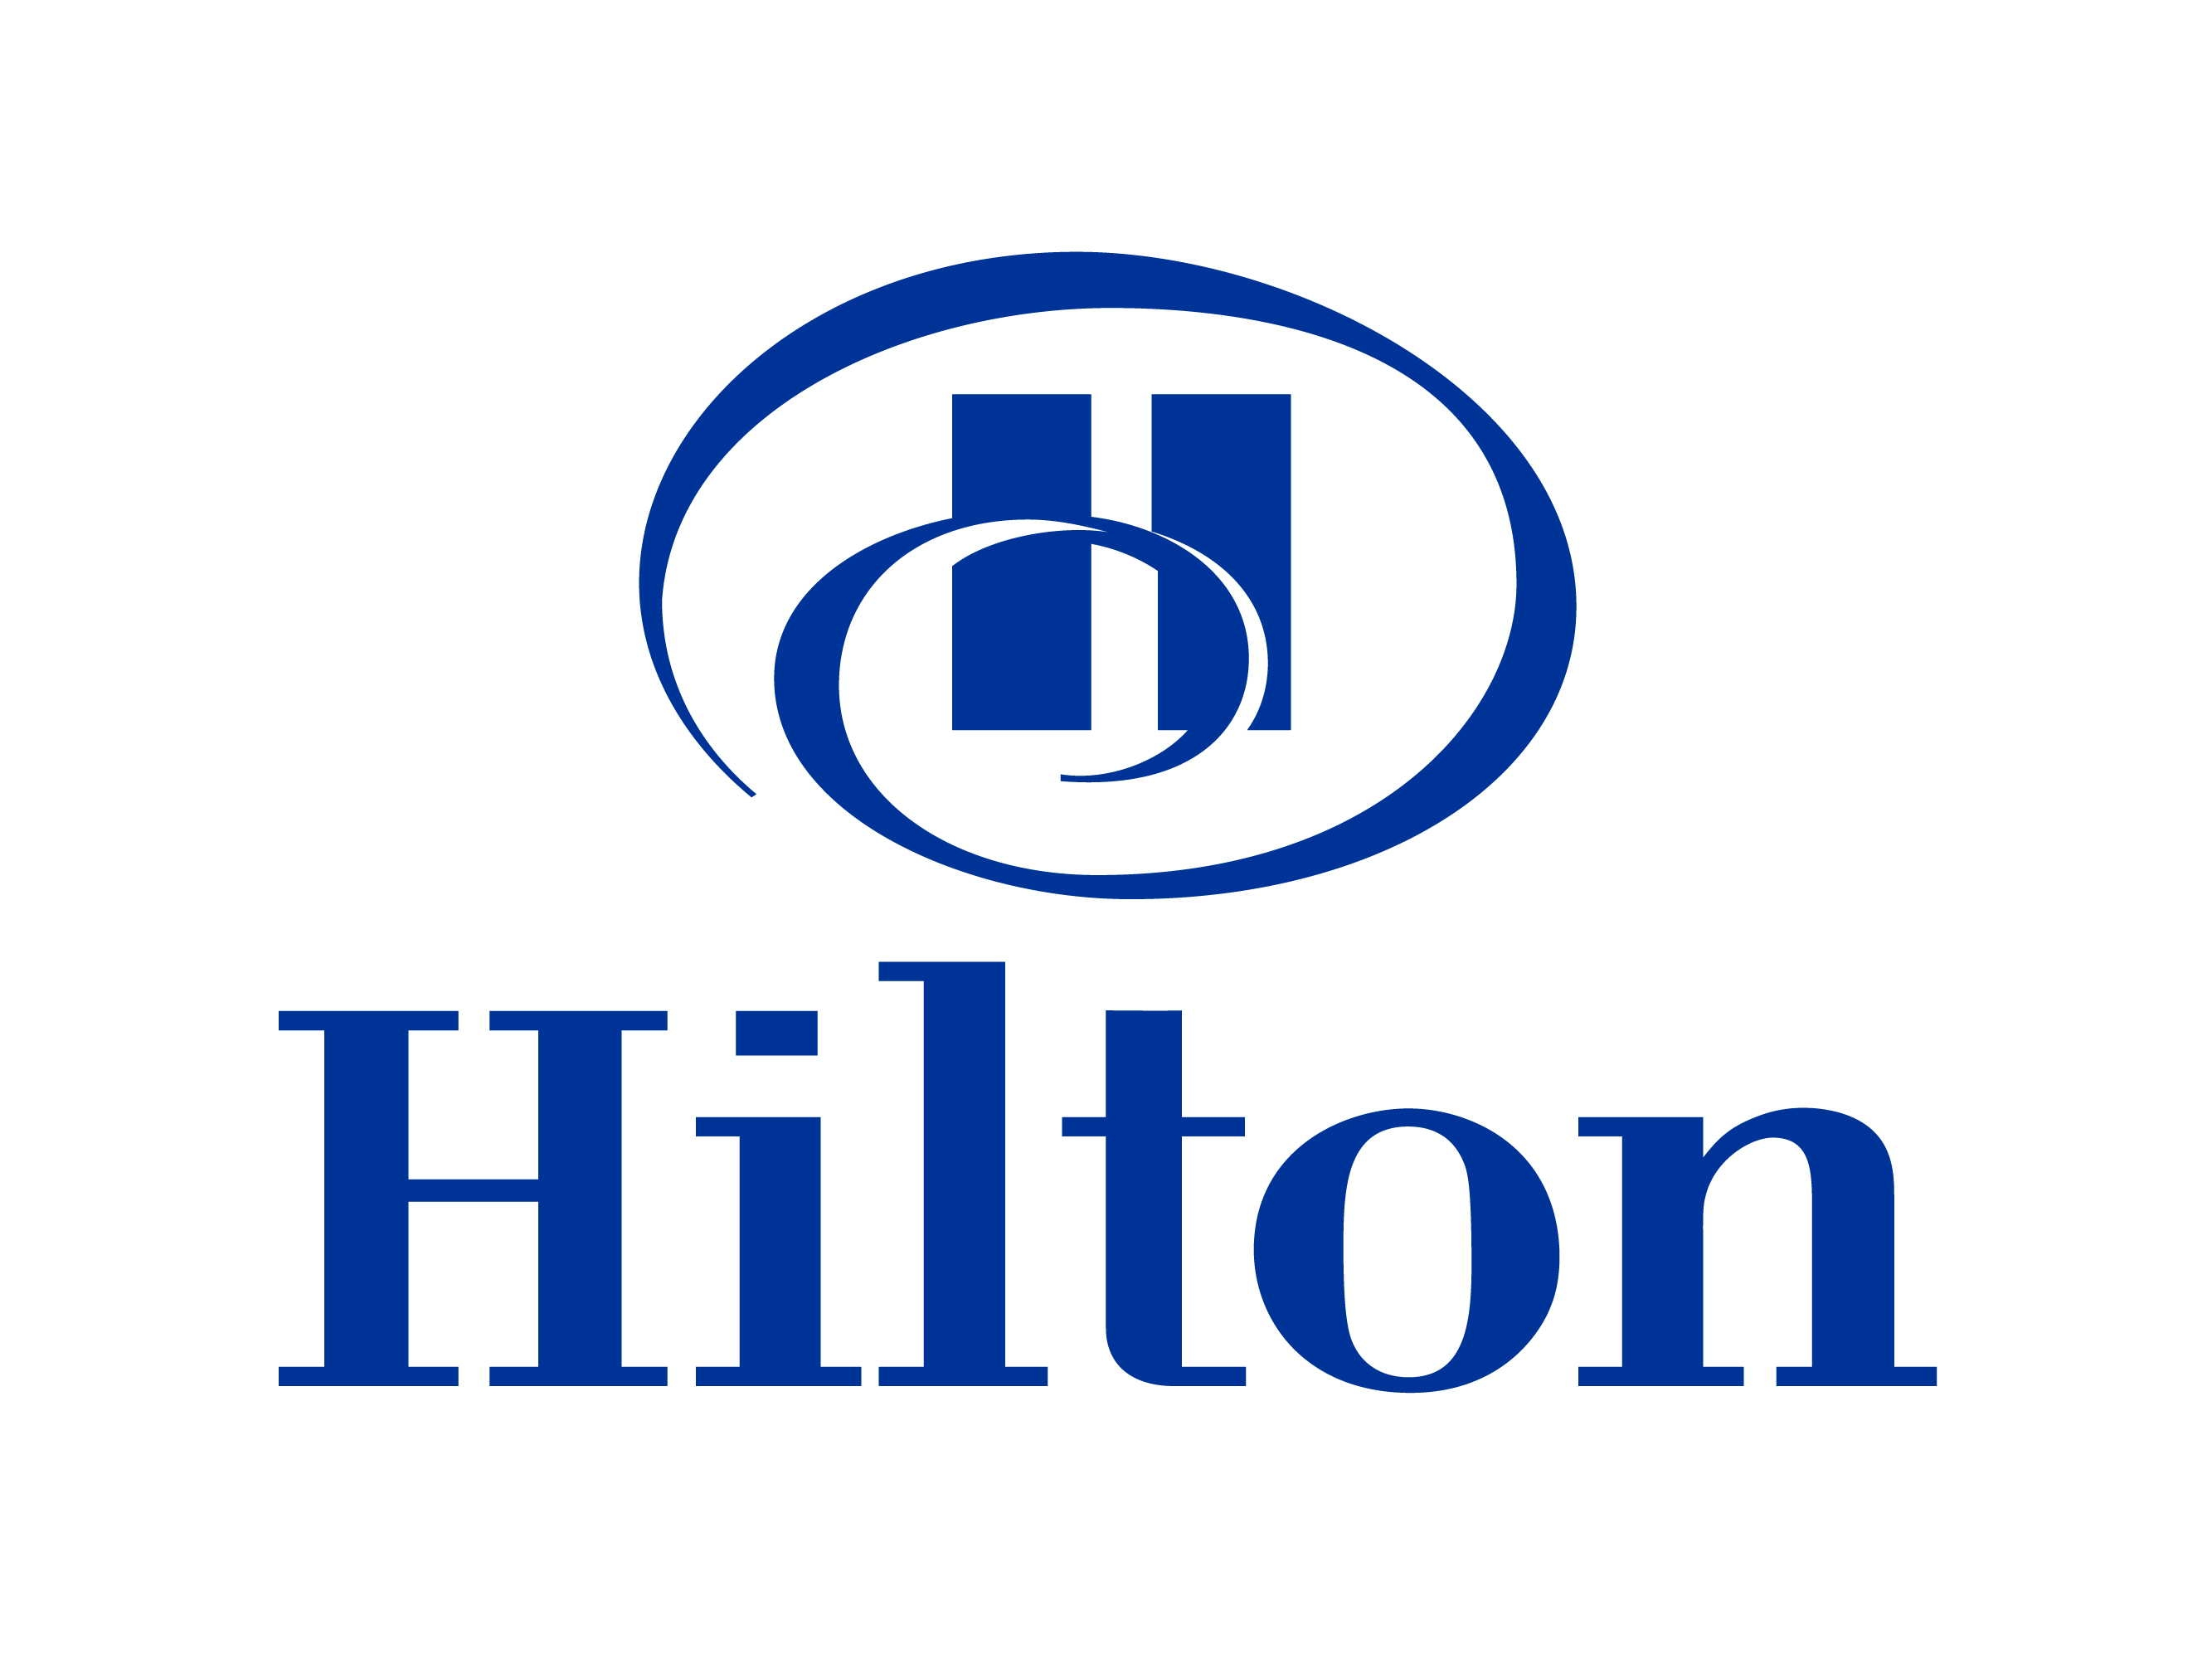 hilton hotels supply and demand With more than 6,000 properties in our program (including over 1,500 non-hilton-branded hotels), we use our $4 billion combined spend to drive massive economies of scale and negotiate competitive contracts with industry-leading suppliers.